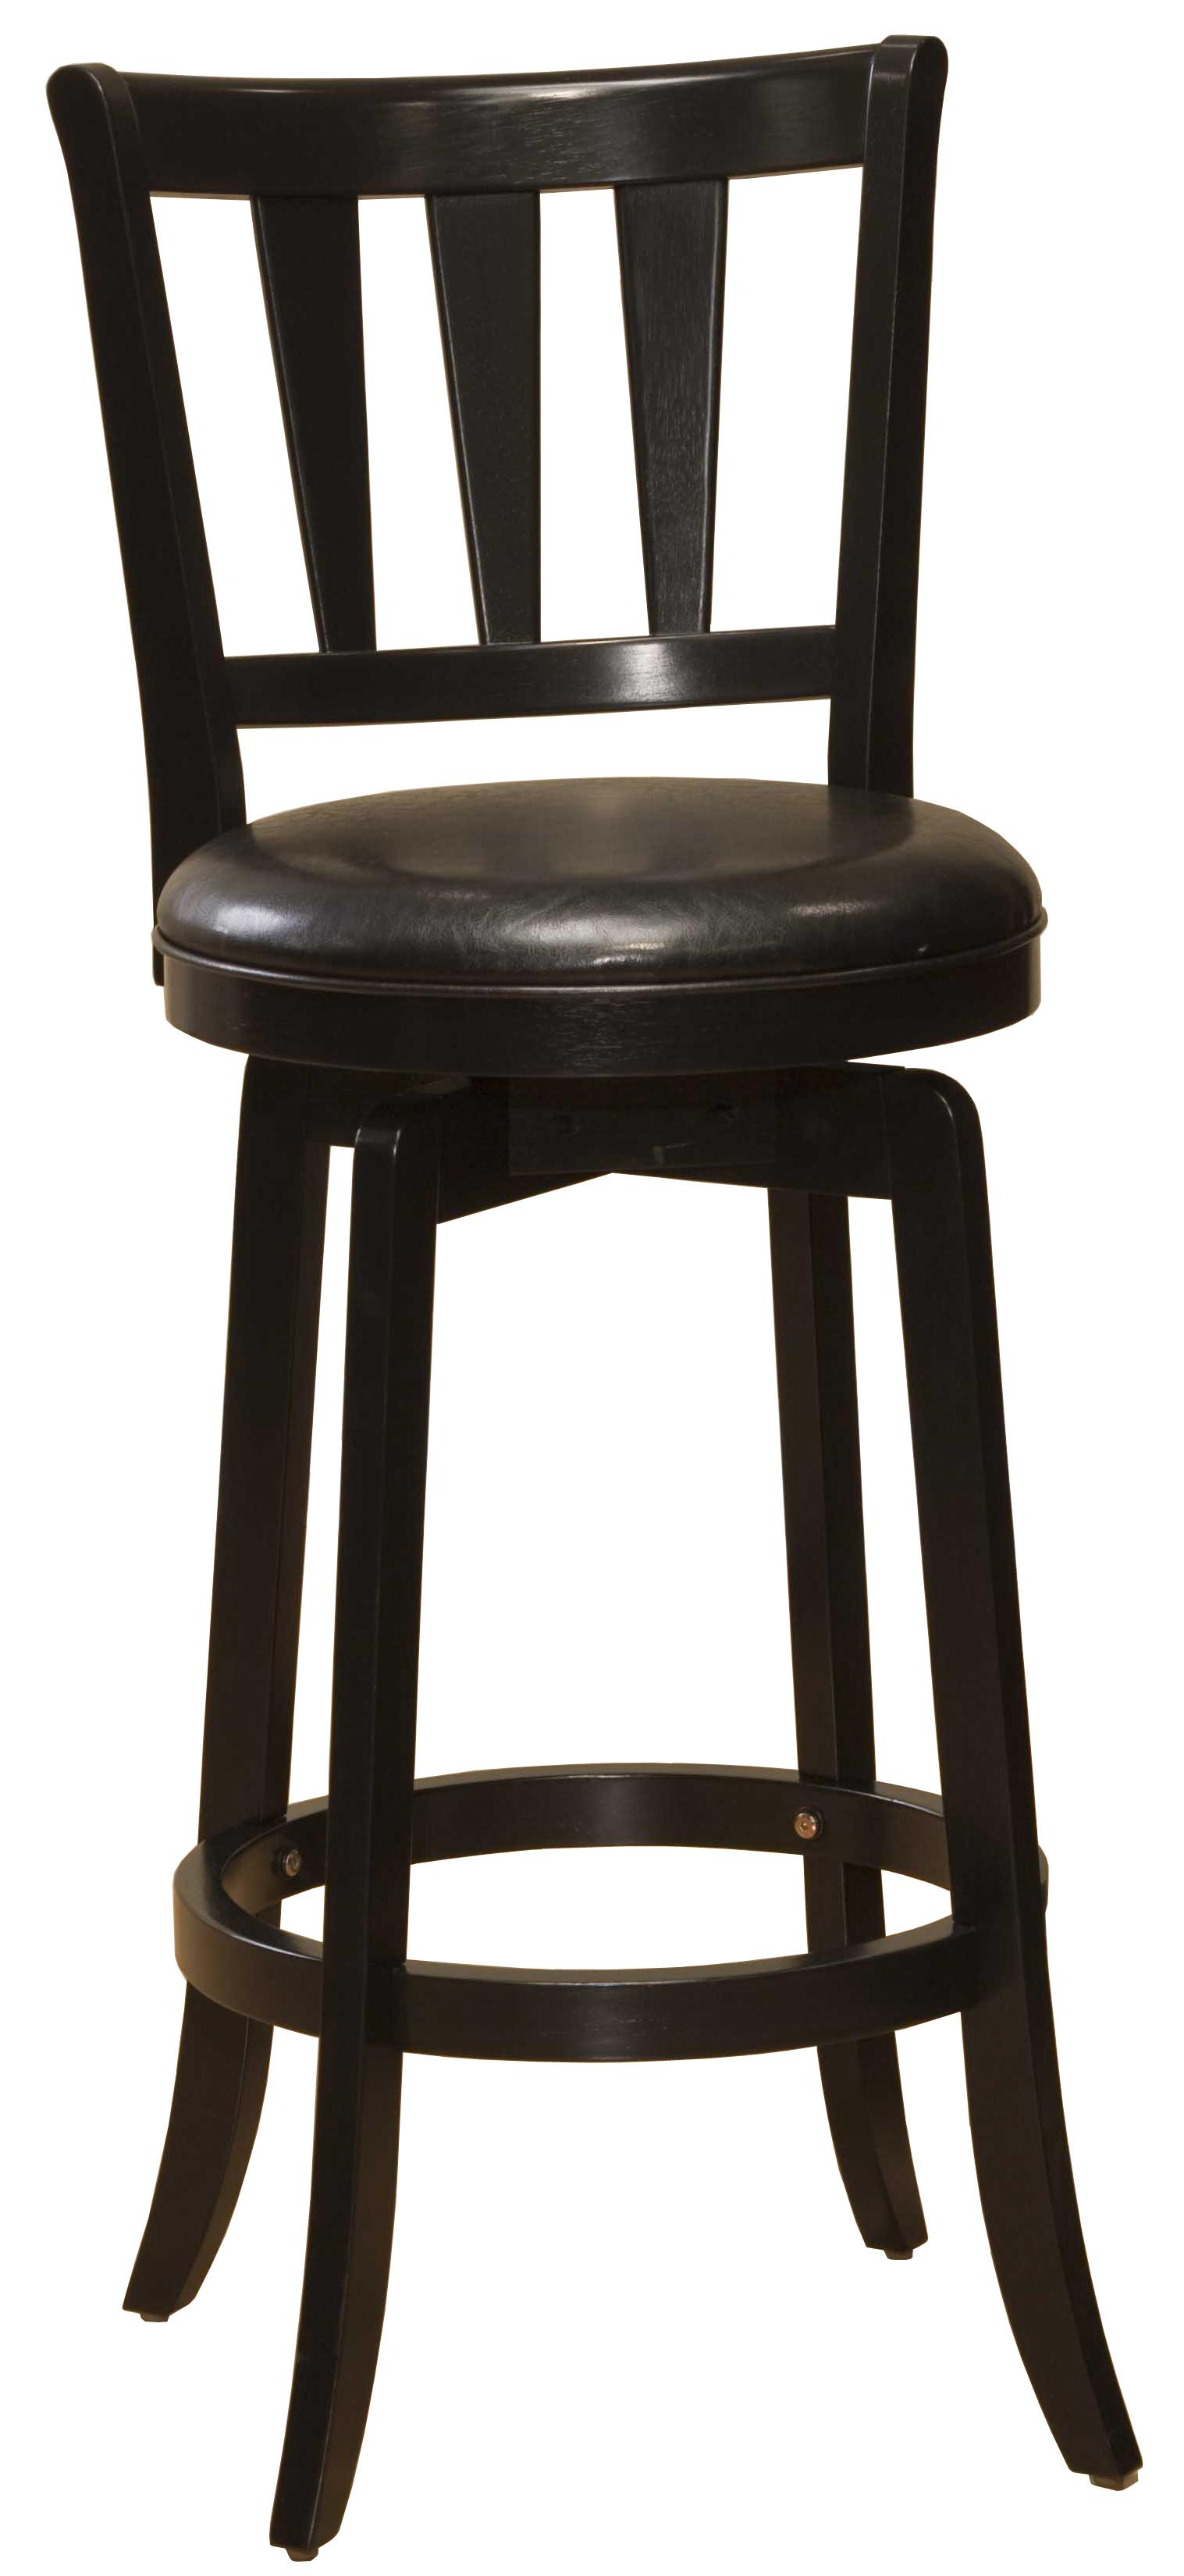 Hillsdale Wood Stools 30 Bar Height Presque Isle Swivel Bar Stool